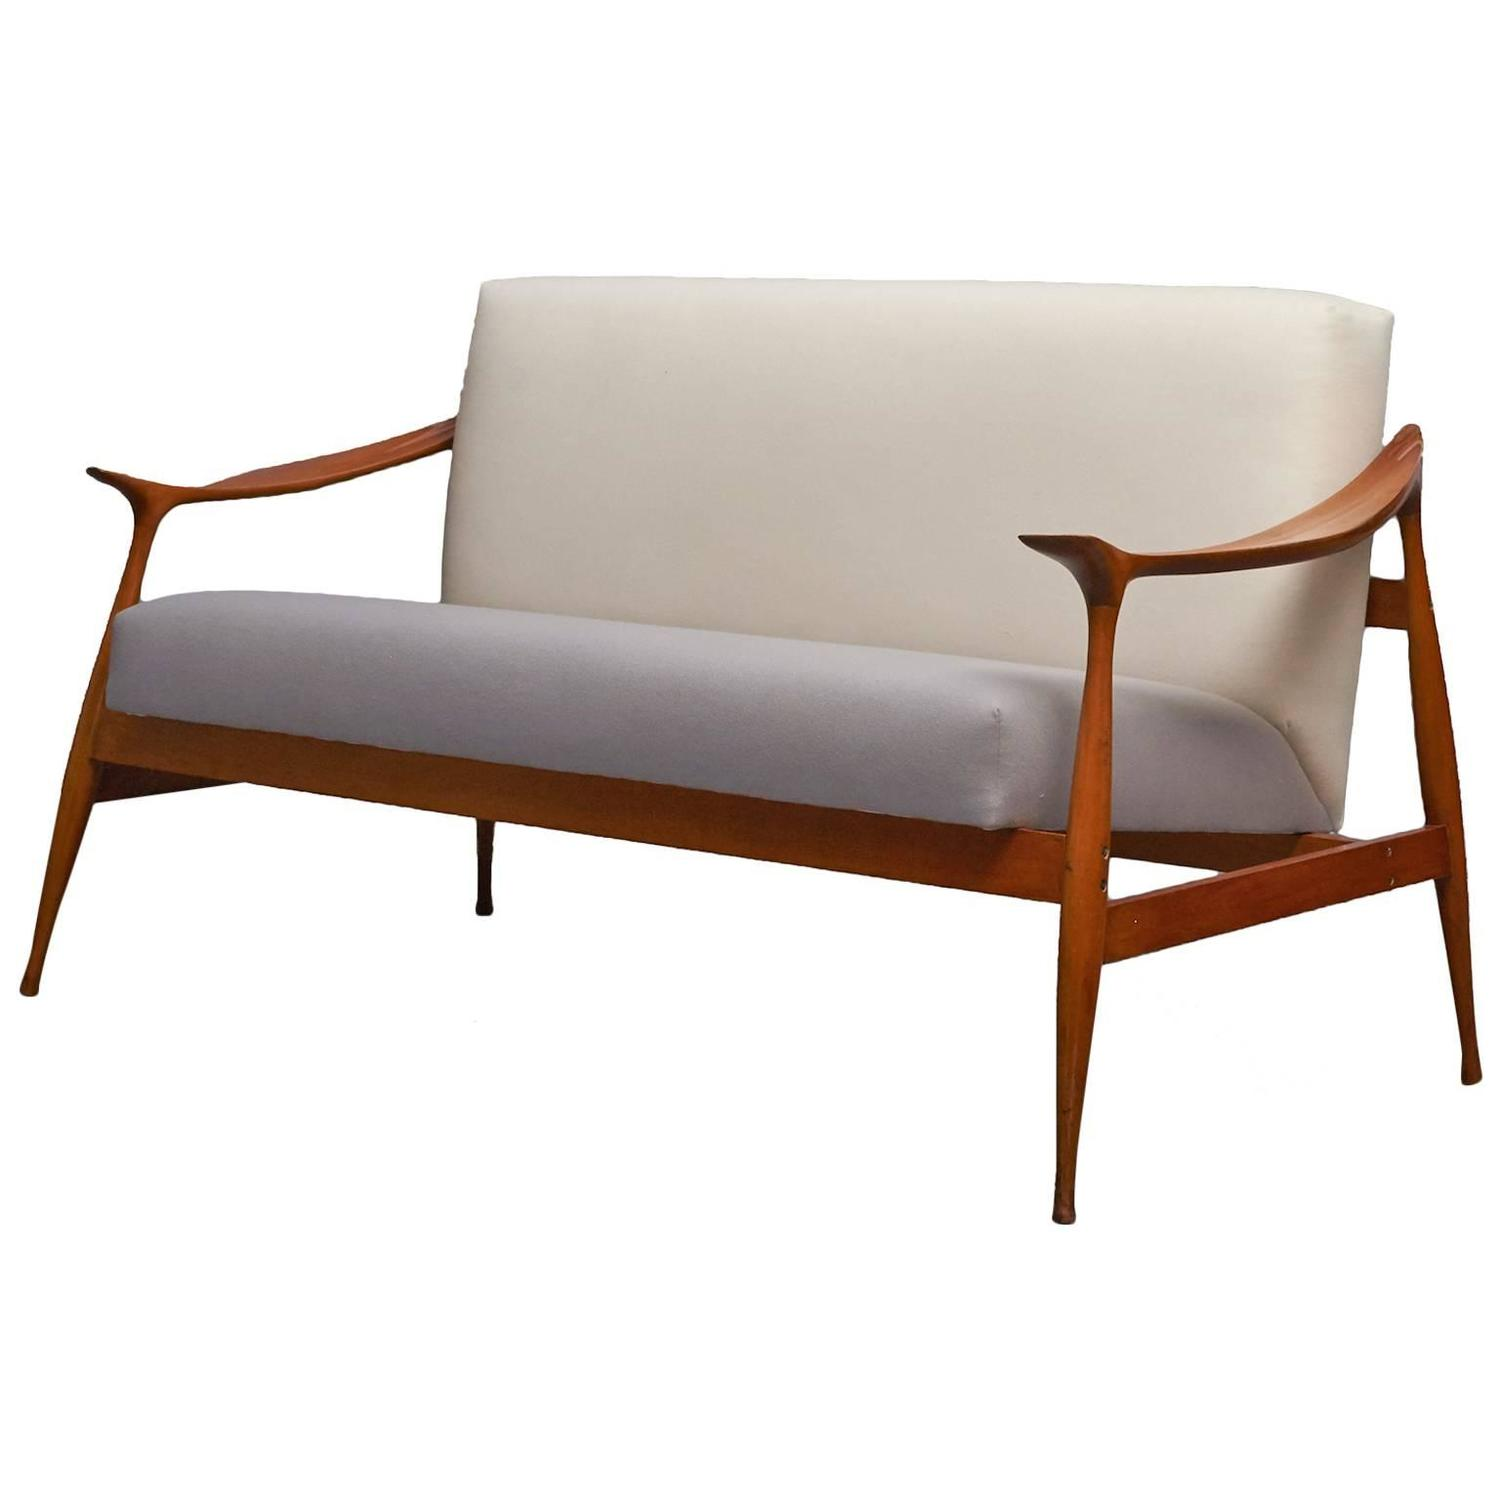 Ico Parisi Lord Settee For Sale At 1stdibs